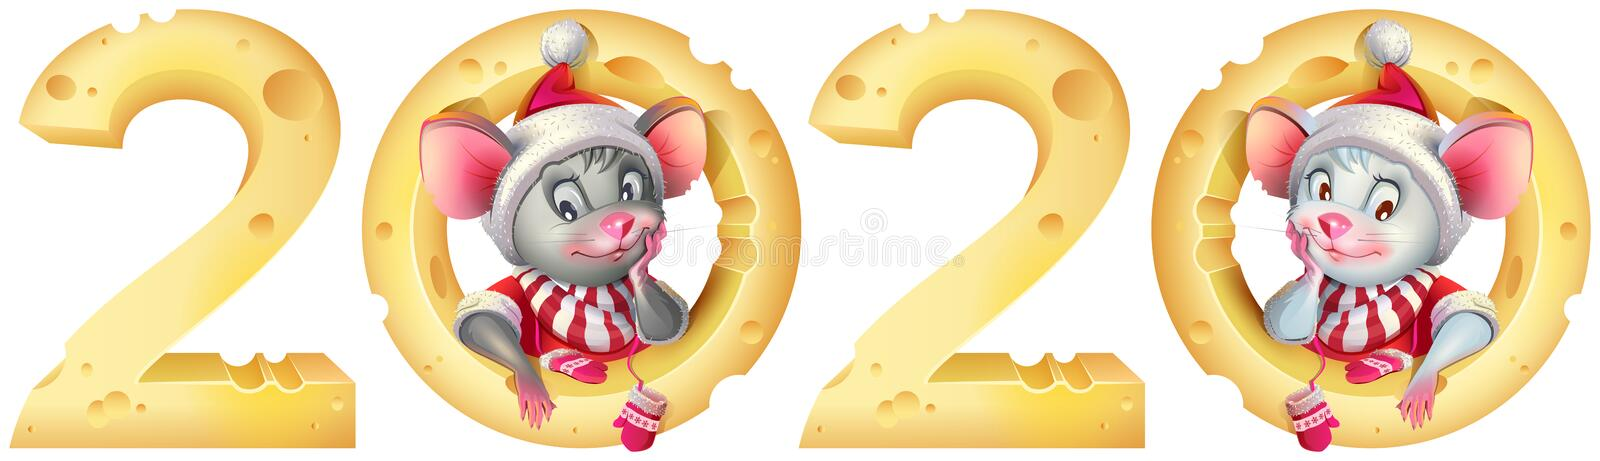 New year 2020 mouse twins. Mice in santa costume and cheese calendar royalty free illustration